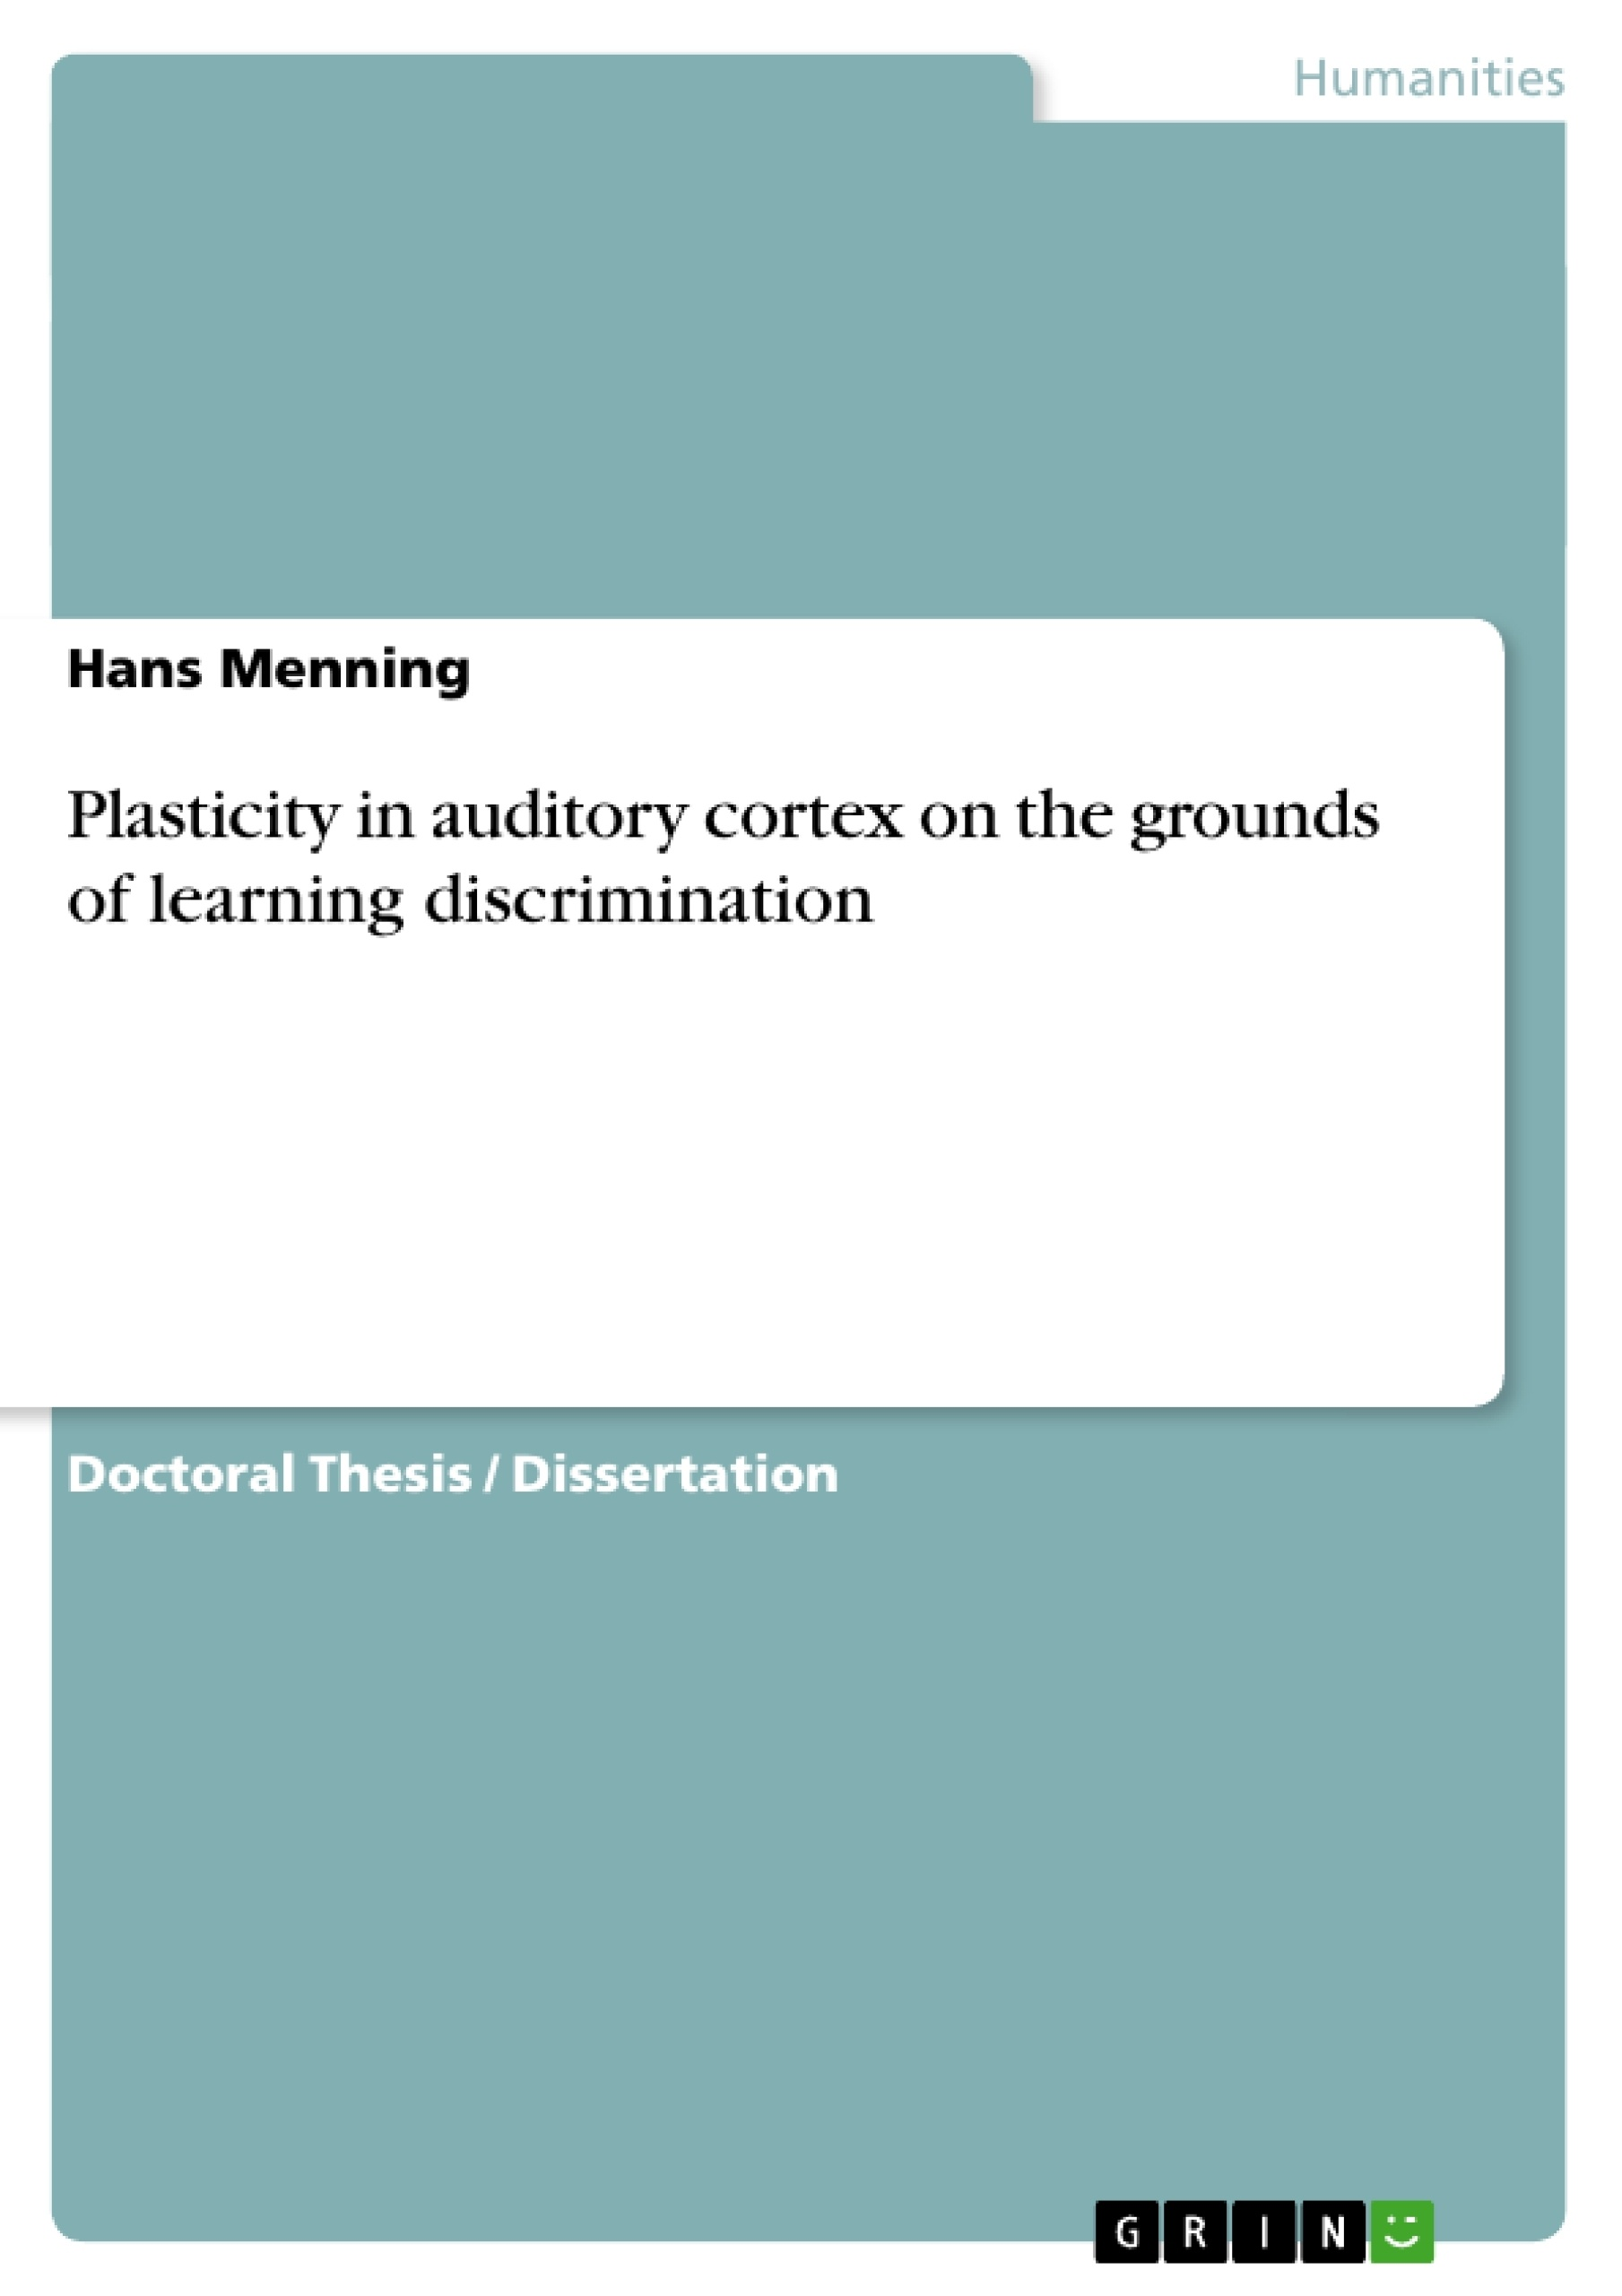 Title: Plasticity in auditory cortex on the grounds of learning discrimination